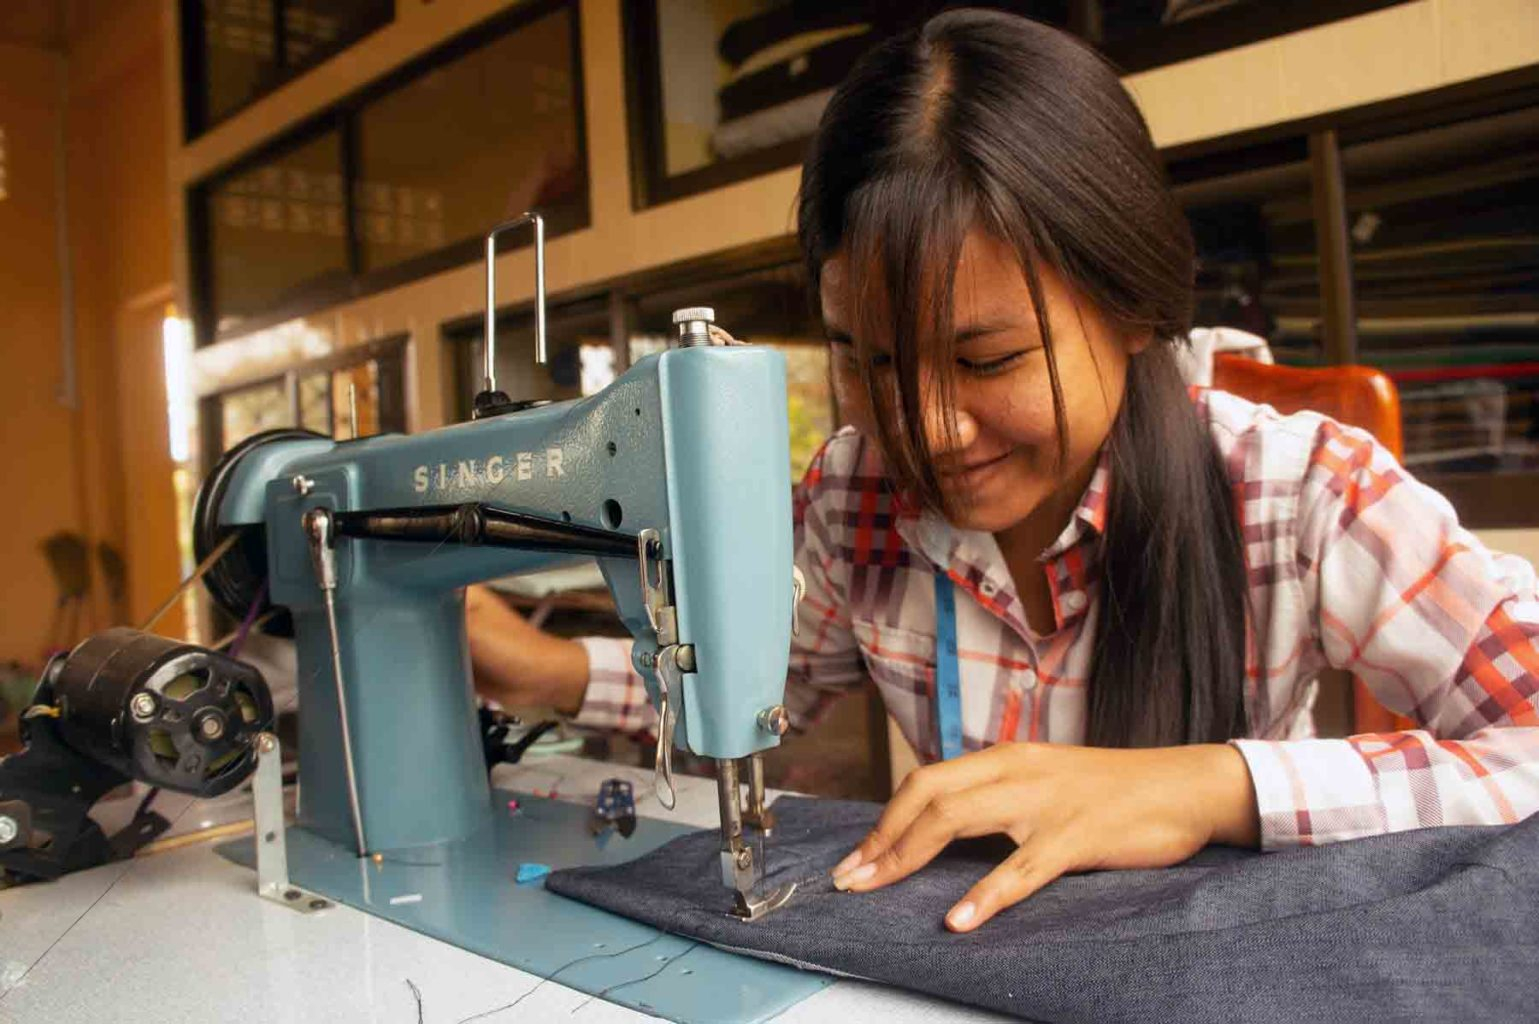 Young Cambodian girl following an apprenticeship in sewing design in a training center in Battambang, Cambodia.